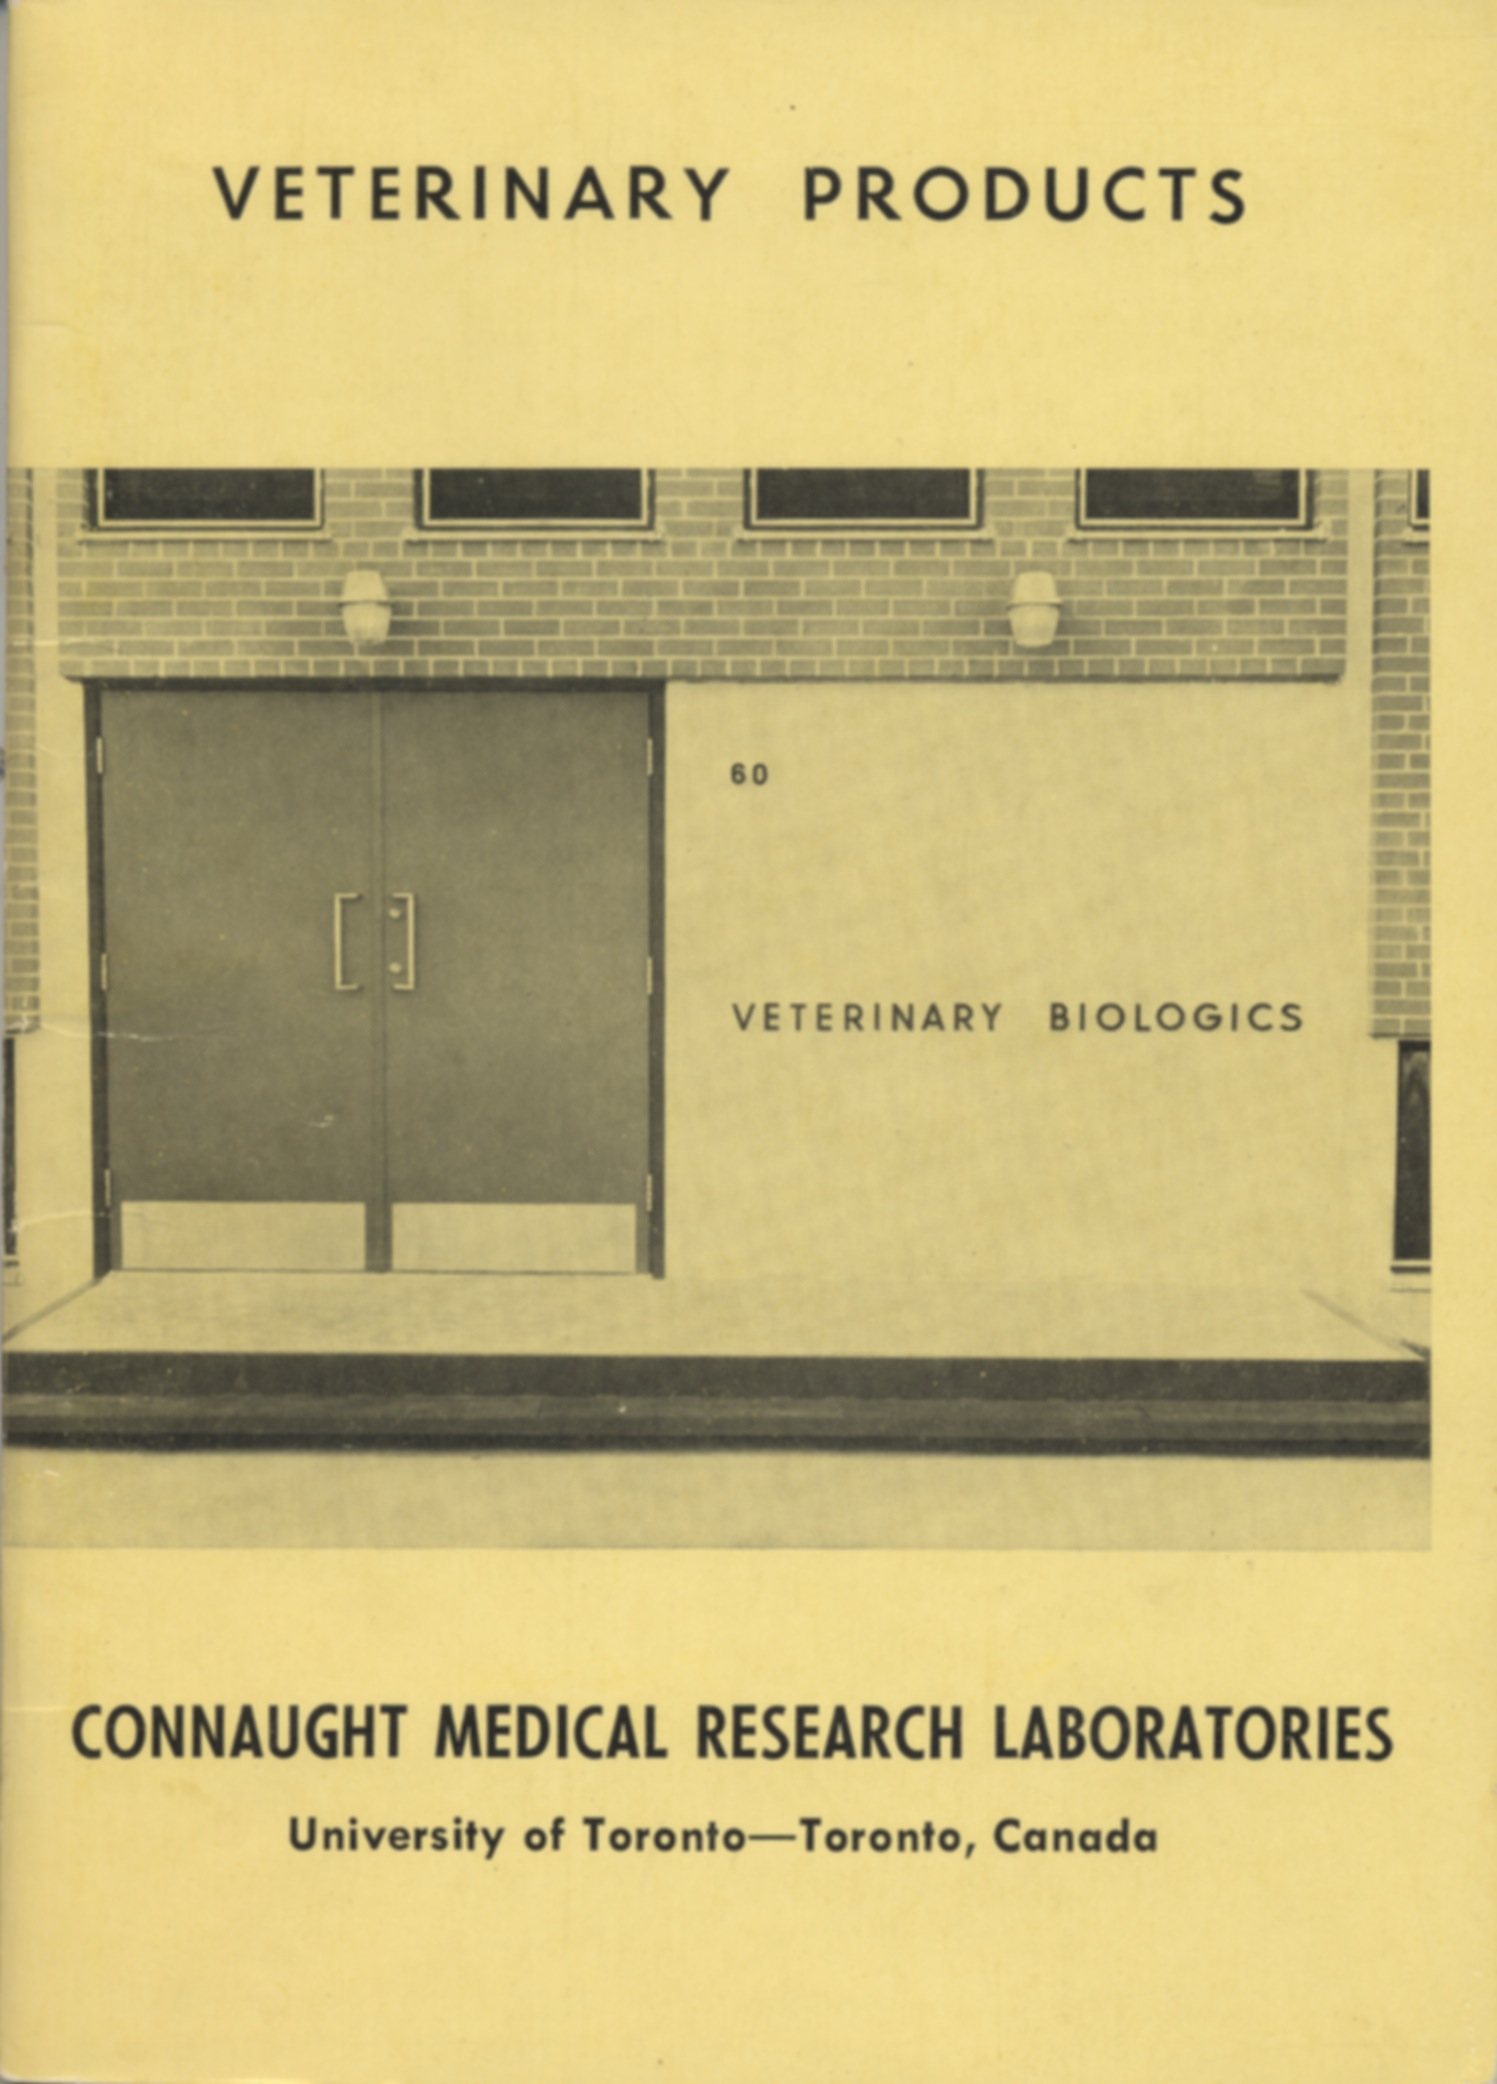 Connaught Laboratories Veterinary Products catalogue, Aug. 1961, which highlighted the new Veterinary Biologics Building, #60.